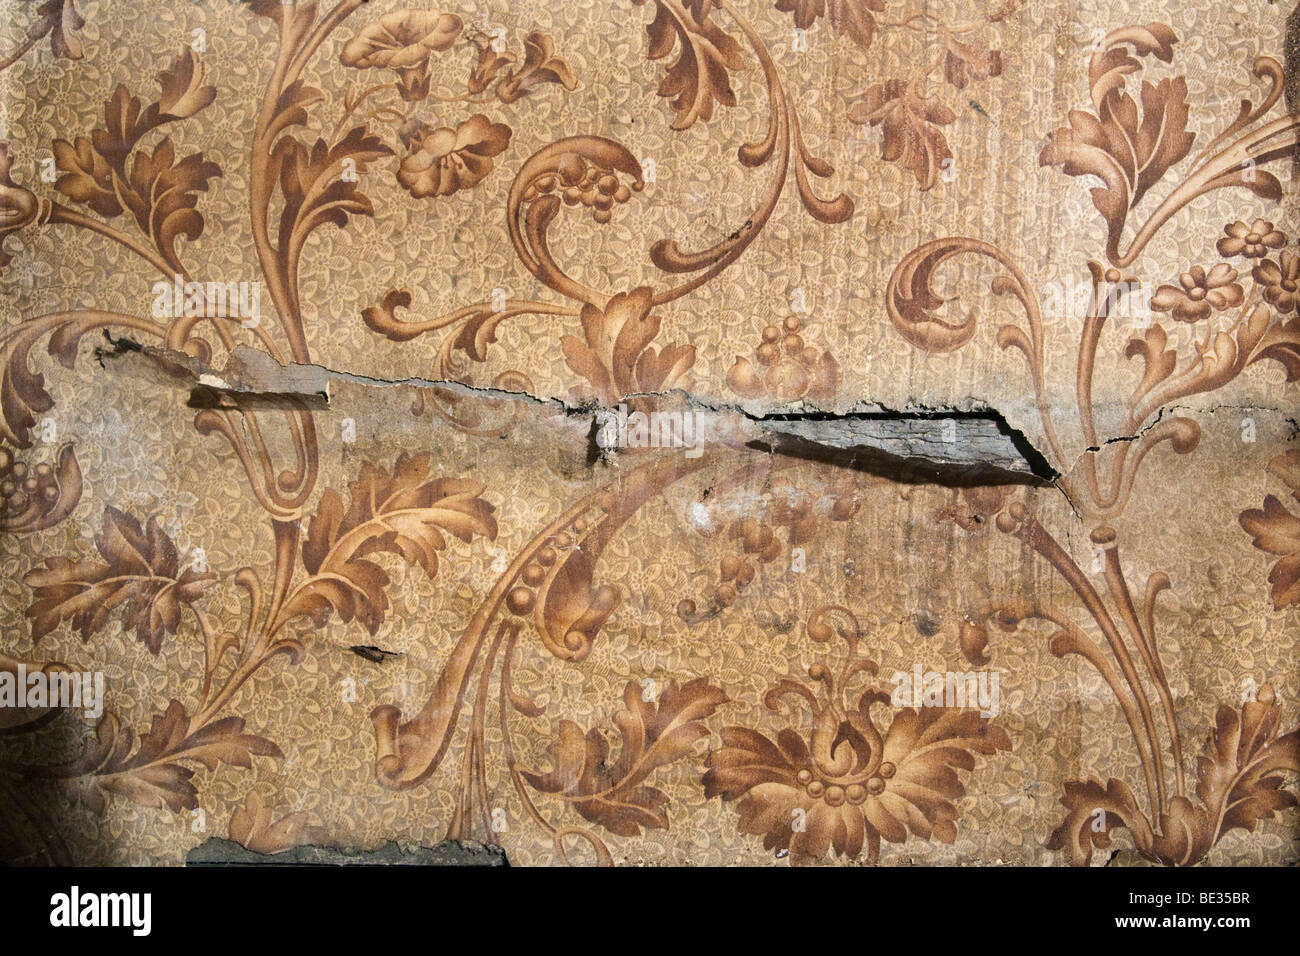 old victorian sanitary wallpaper with a floral pattern or motif